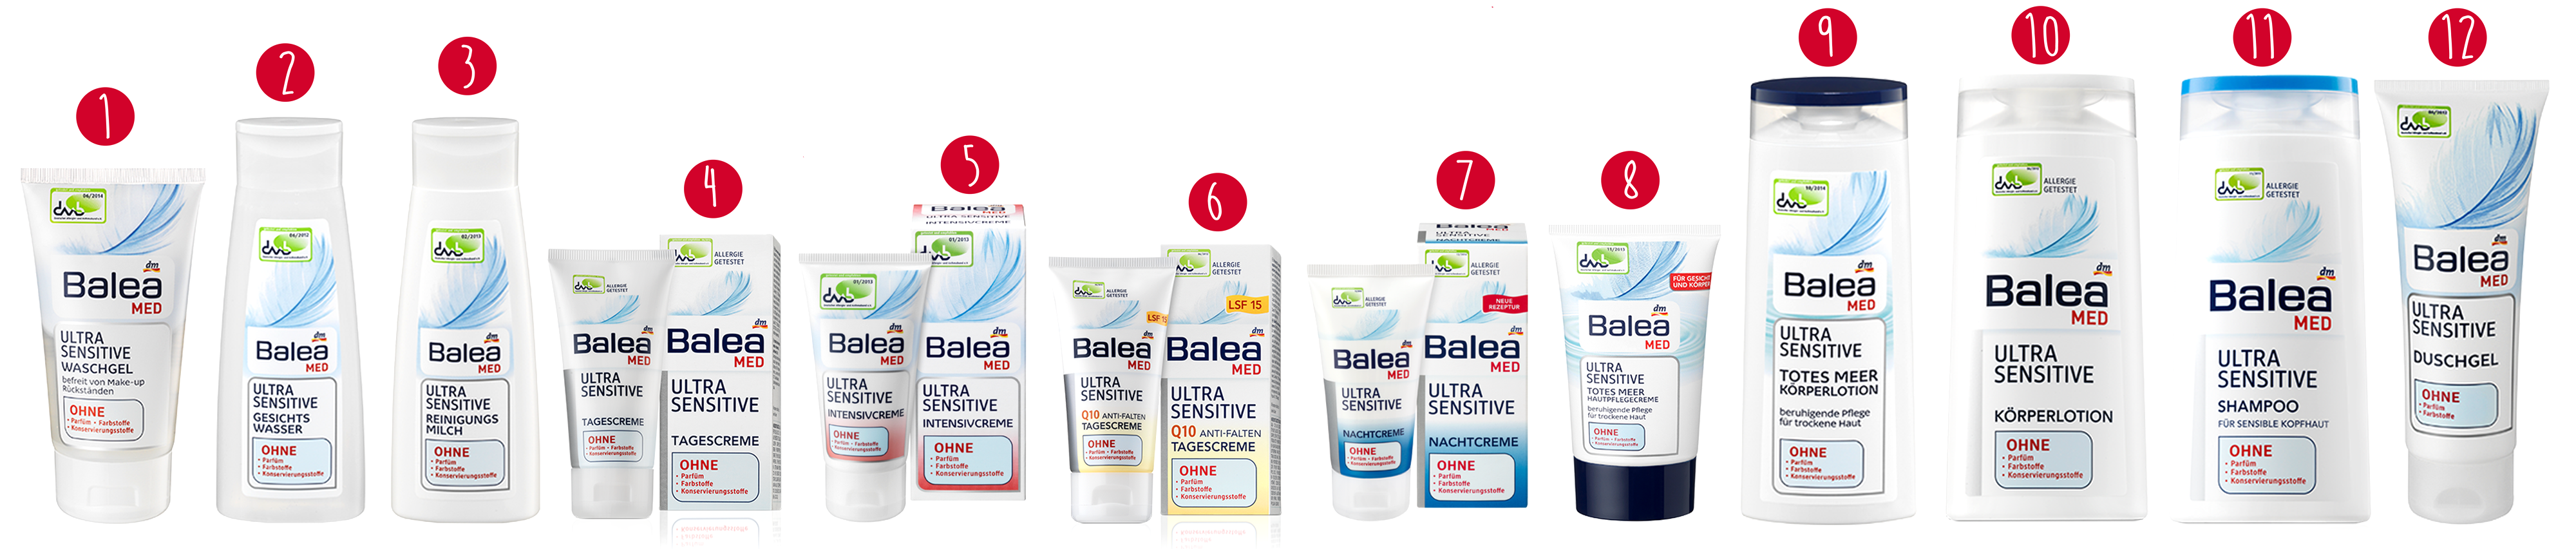 balea_ultra_sensitive_med_check